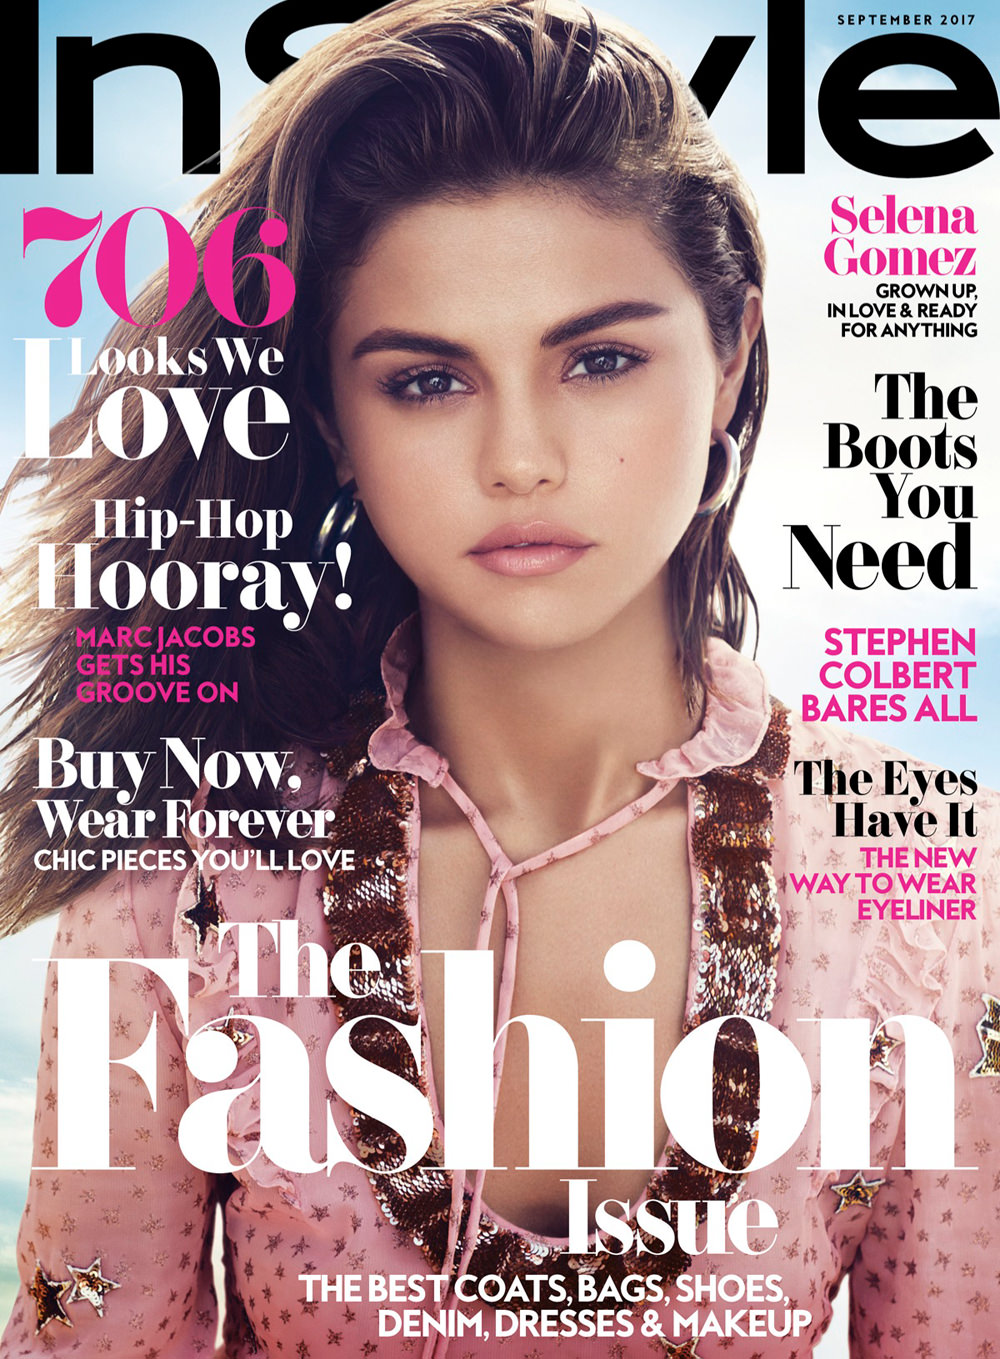 selena gomez covers the september 2017 issue of instyle